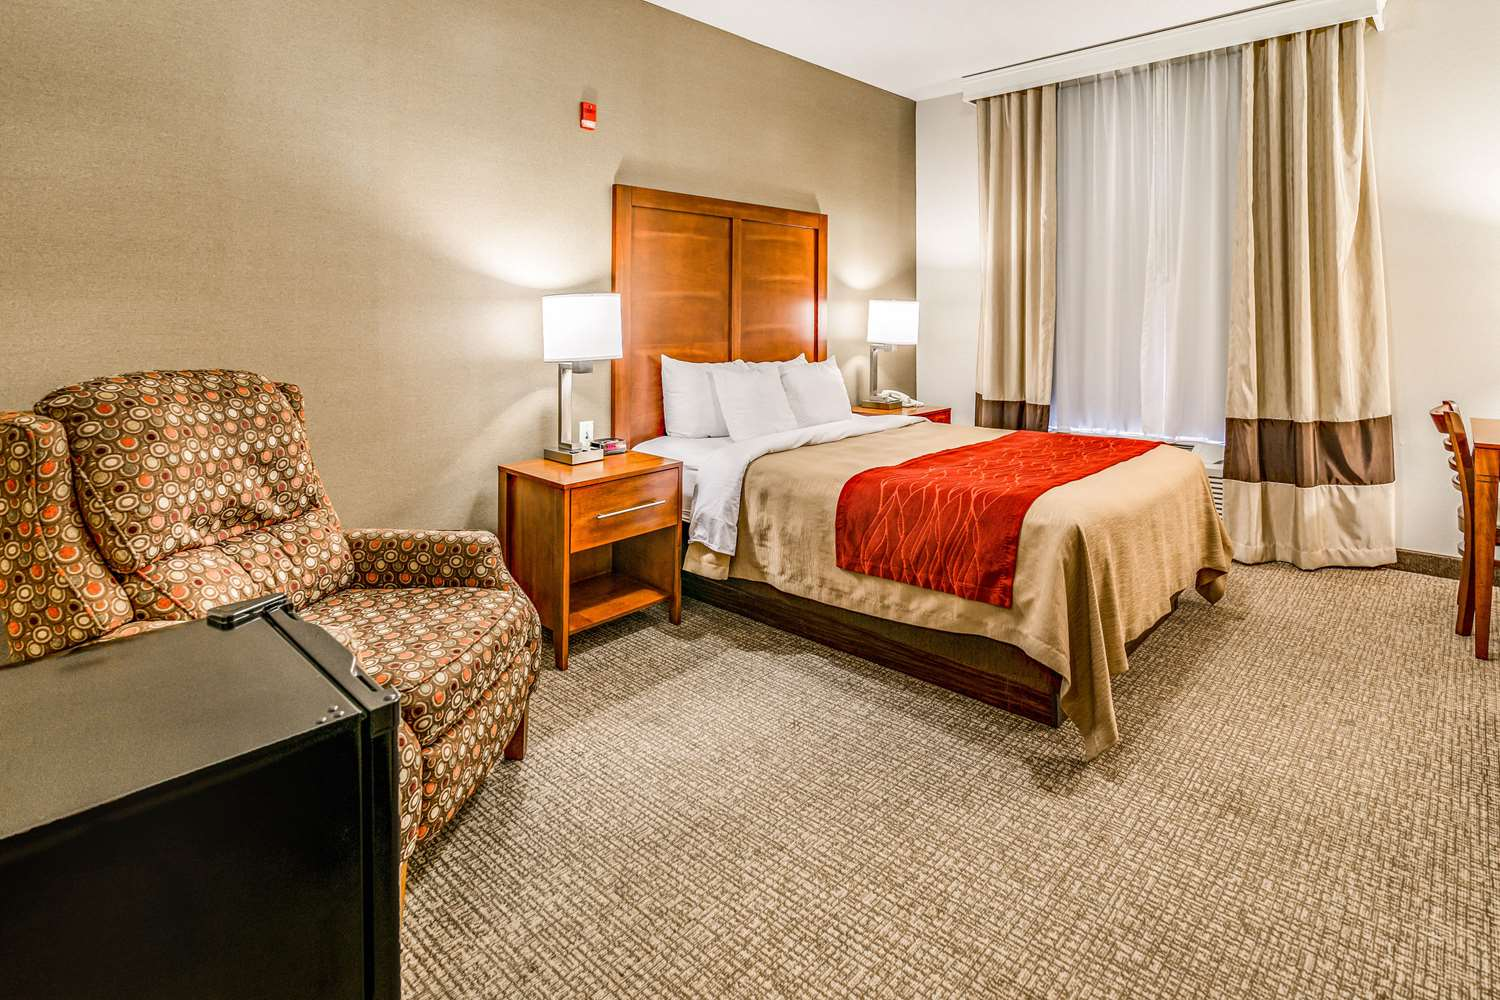 Room - Comfort Inn & Suites Rapid City